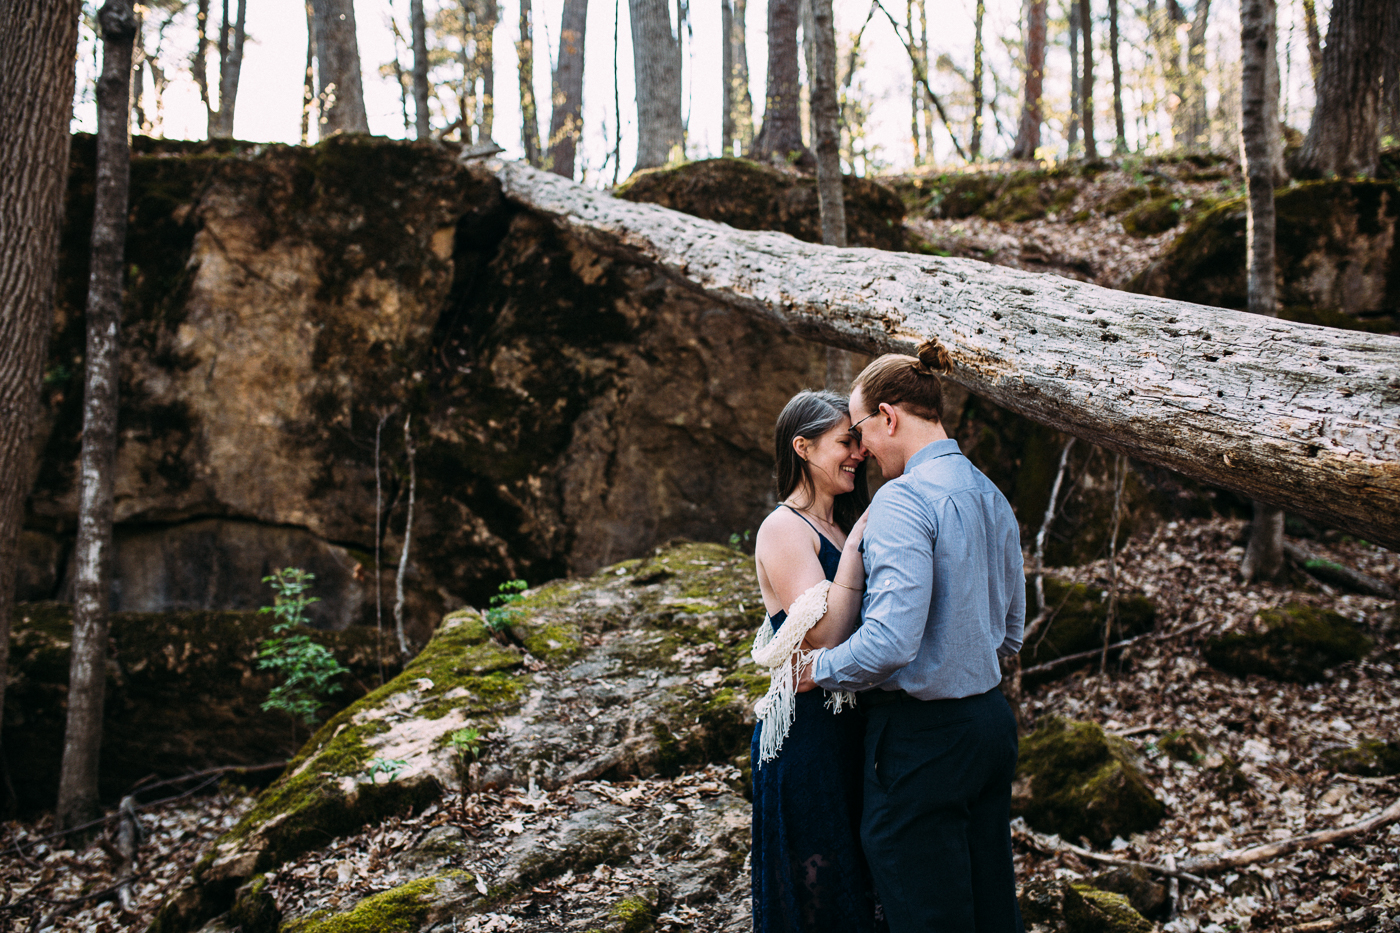 erinwheat photography-jplaurenelopement7156